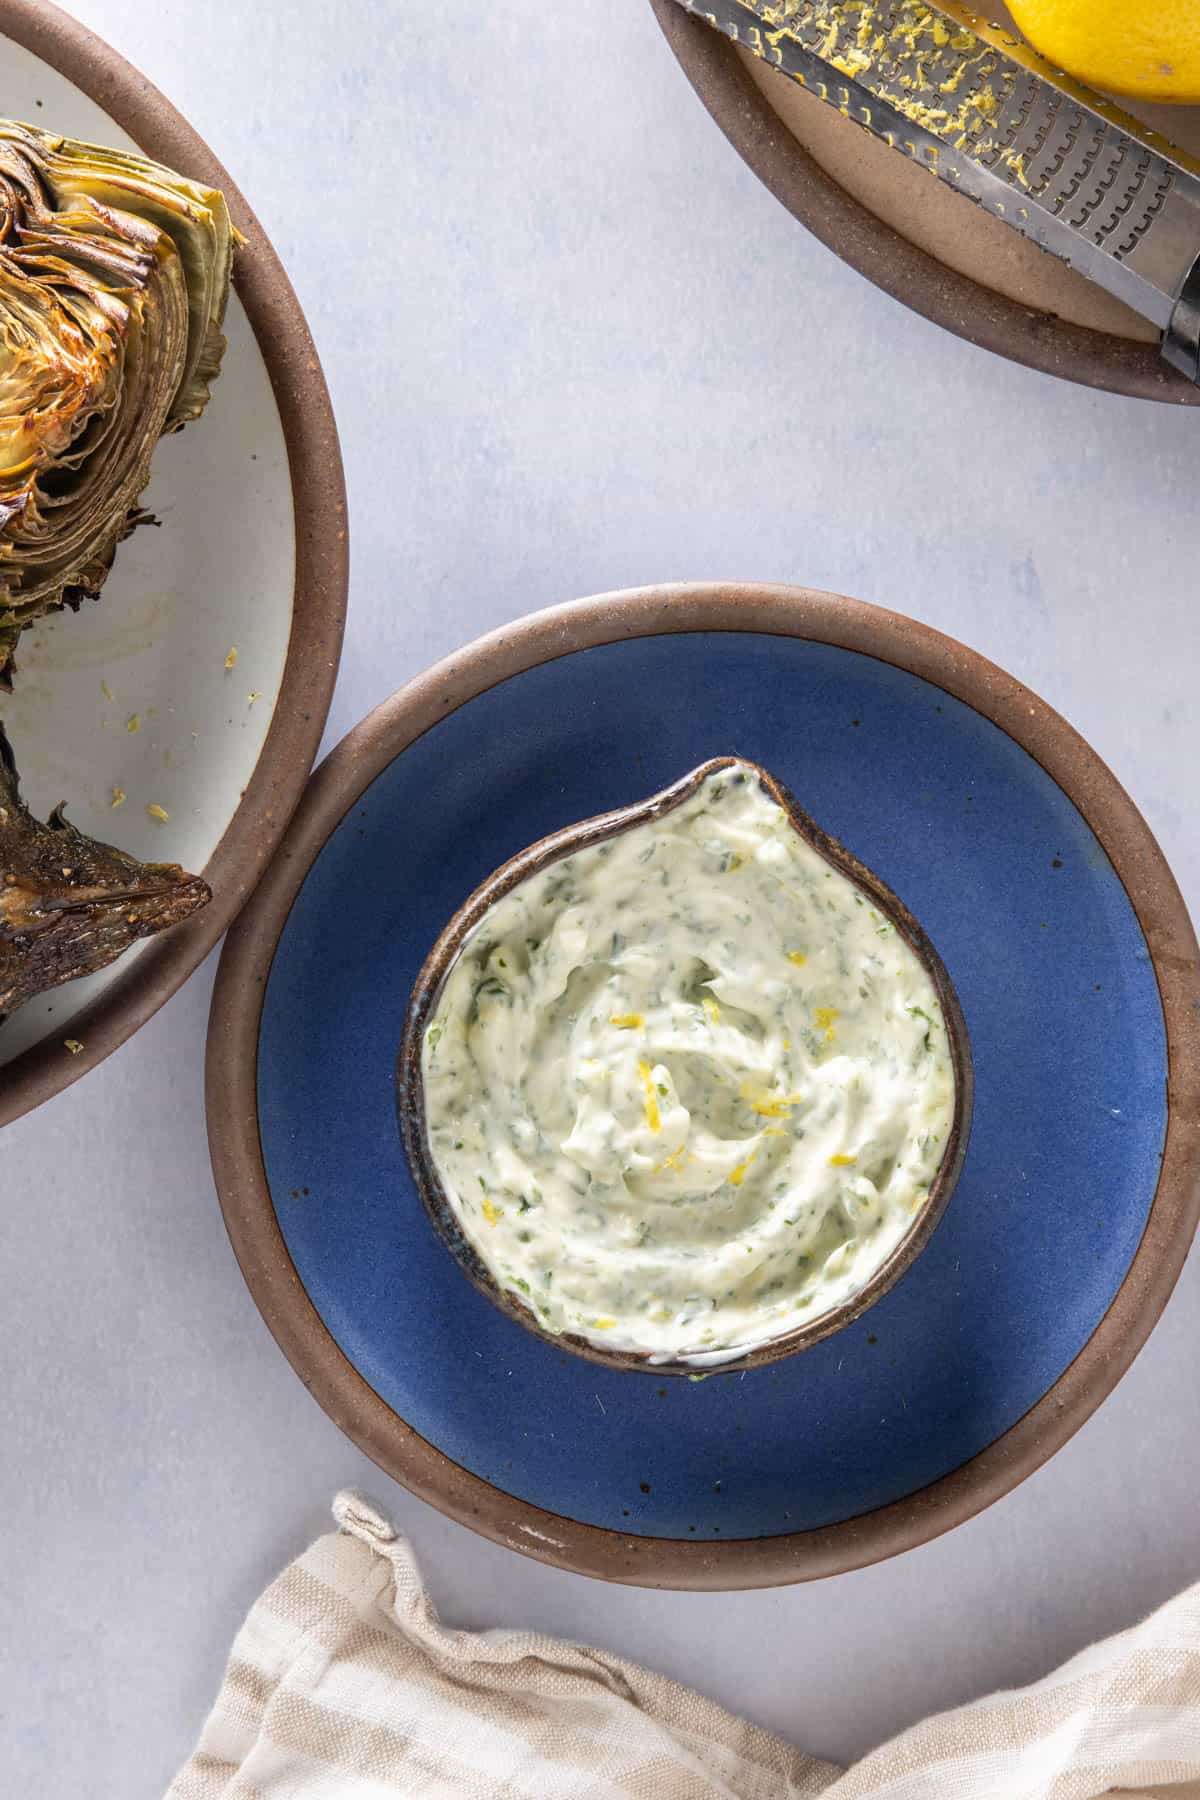 Jar of basil aioli on a plate with some artichokes and lemon zest in the background